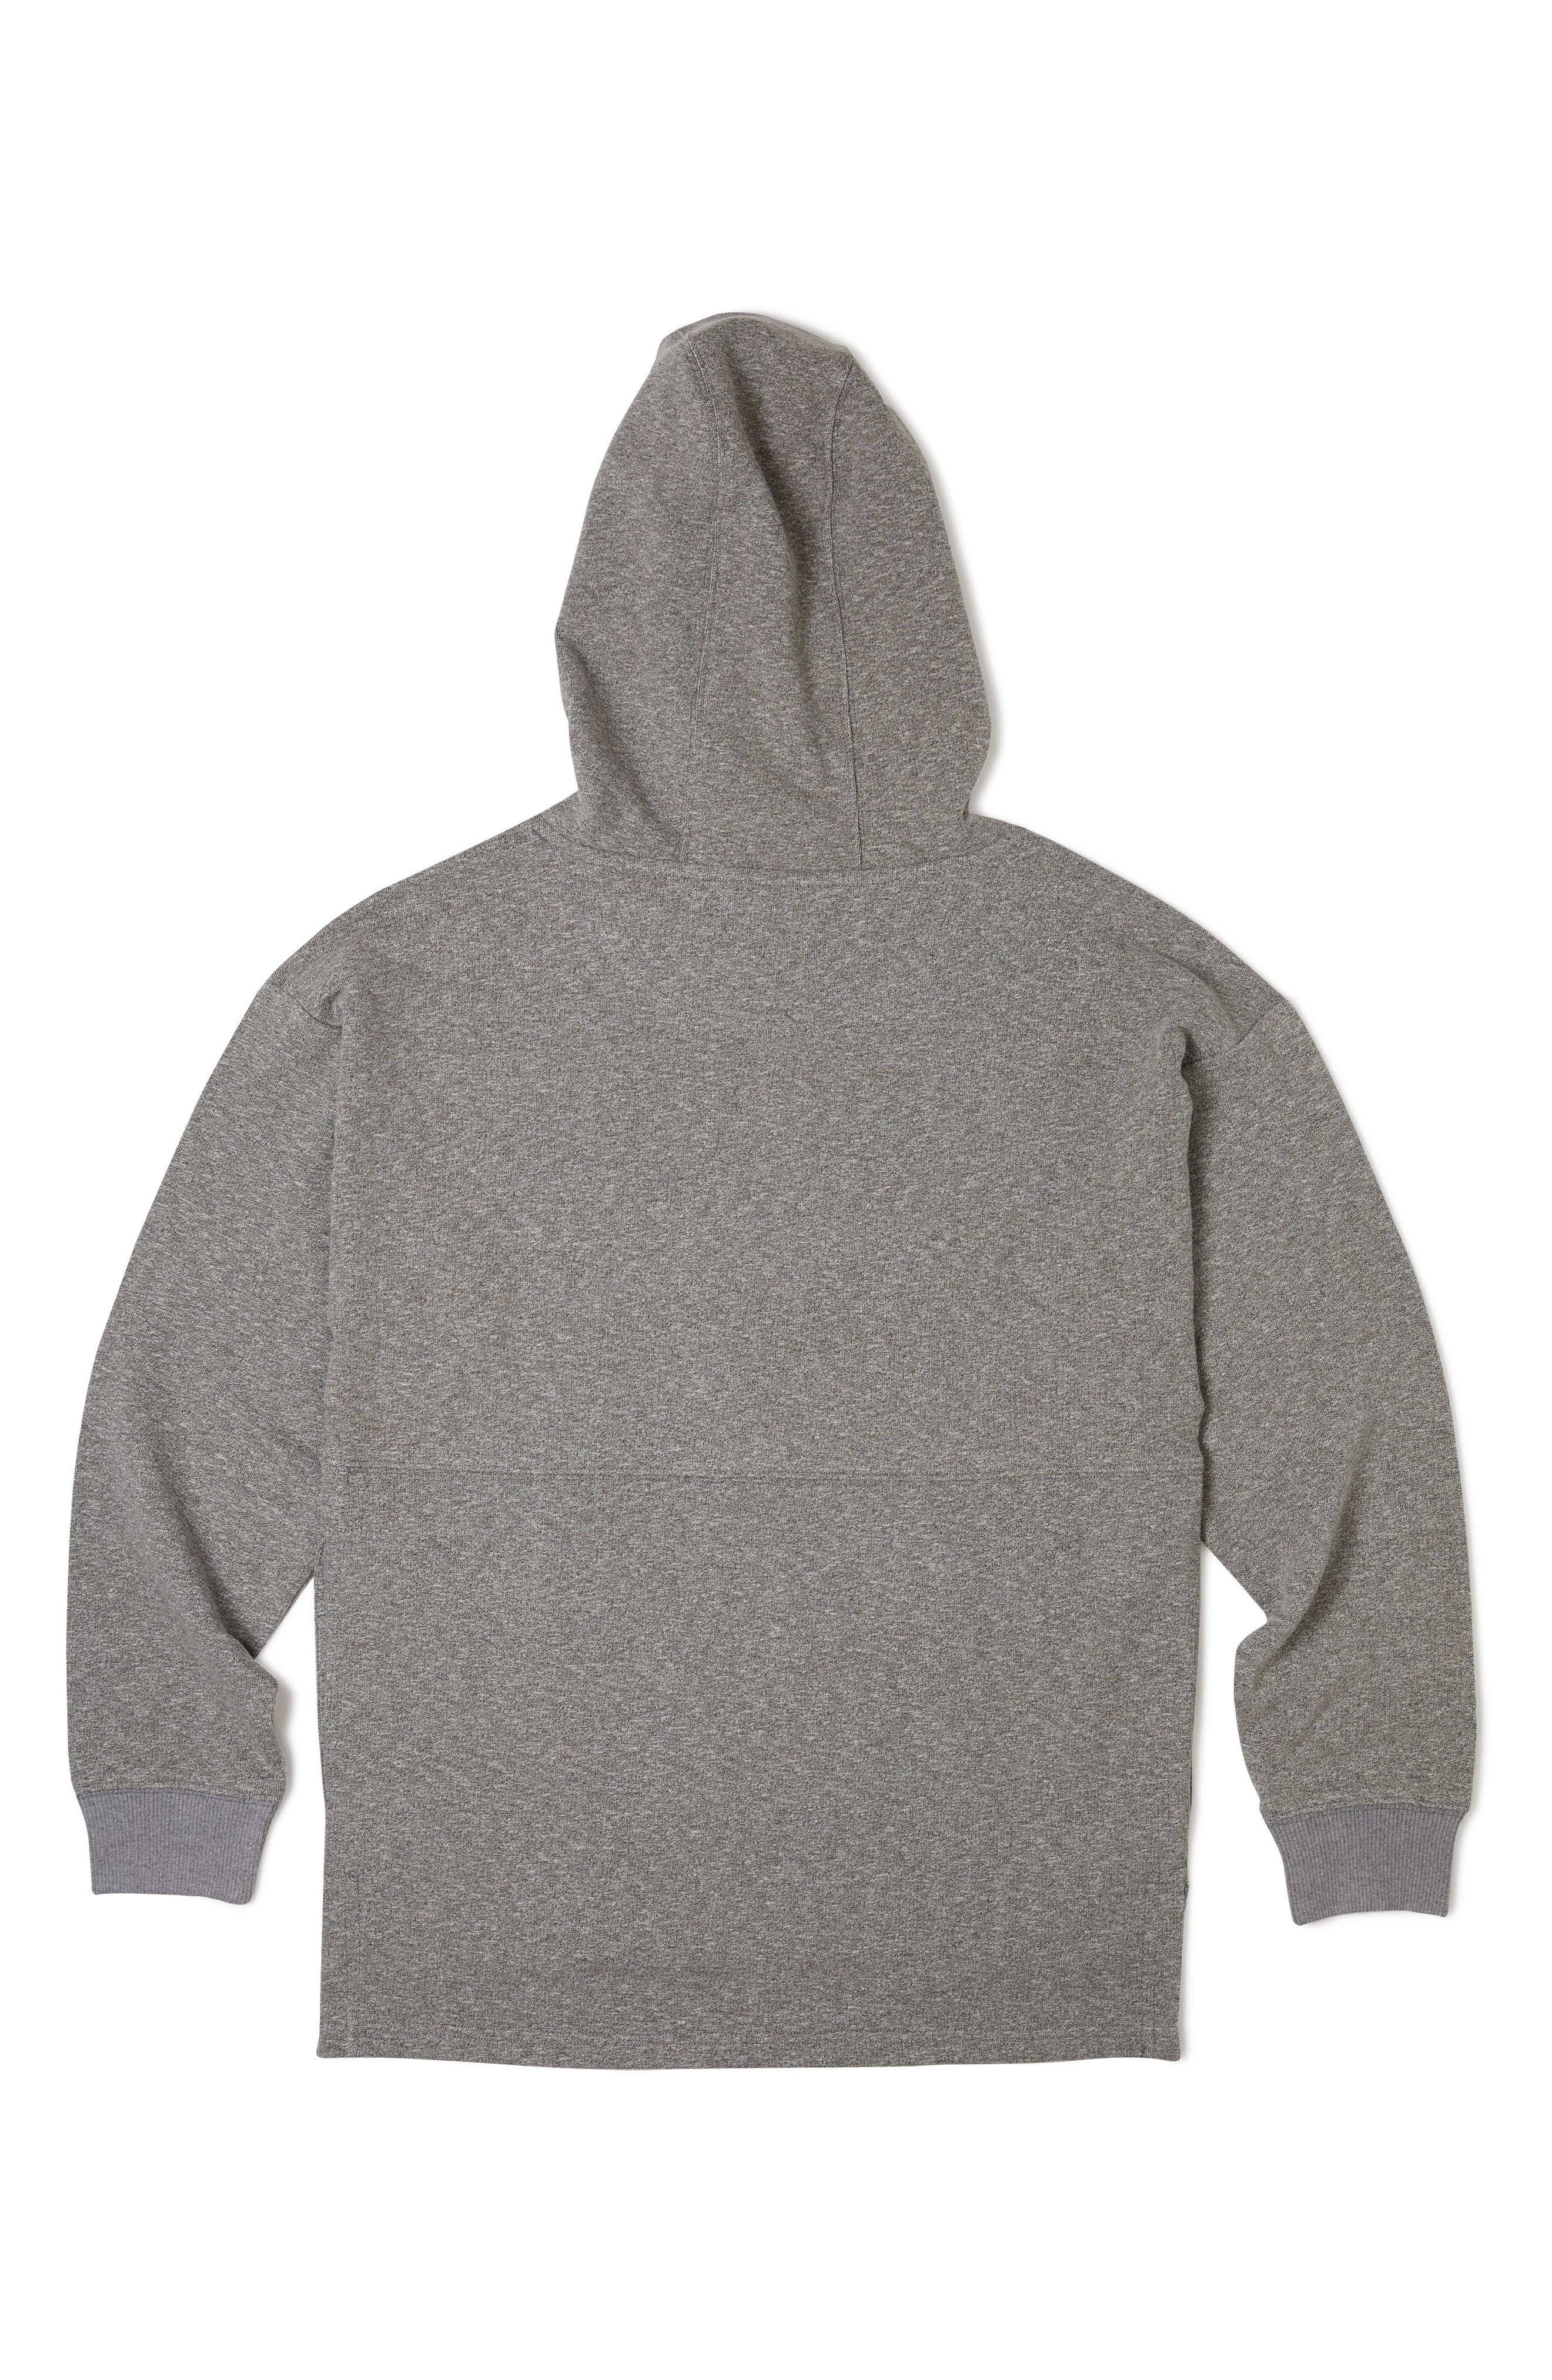 Cruise Hoodie,                             Alternate thumbnail 2, color,                             Heather Grey